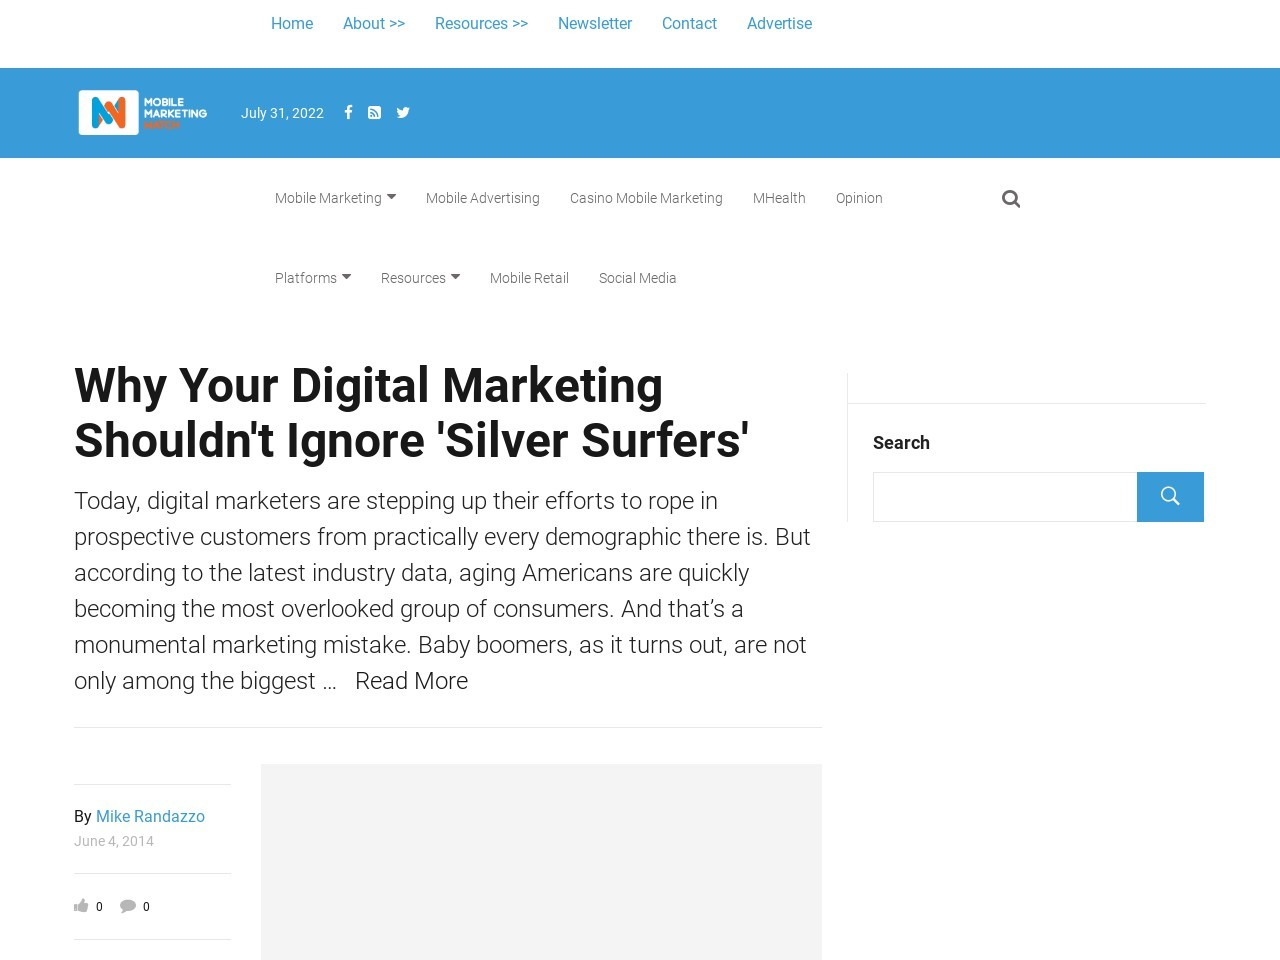 Why Your Digital Marketing Shouldn't Ignore 'Silver Surfers'